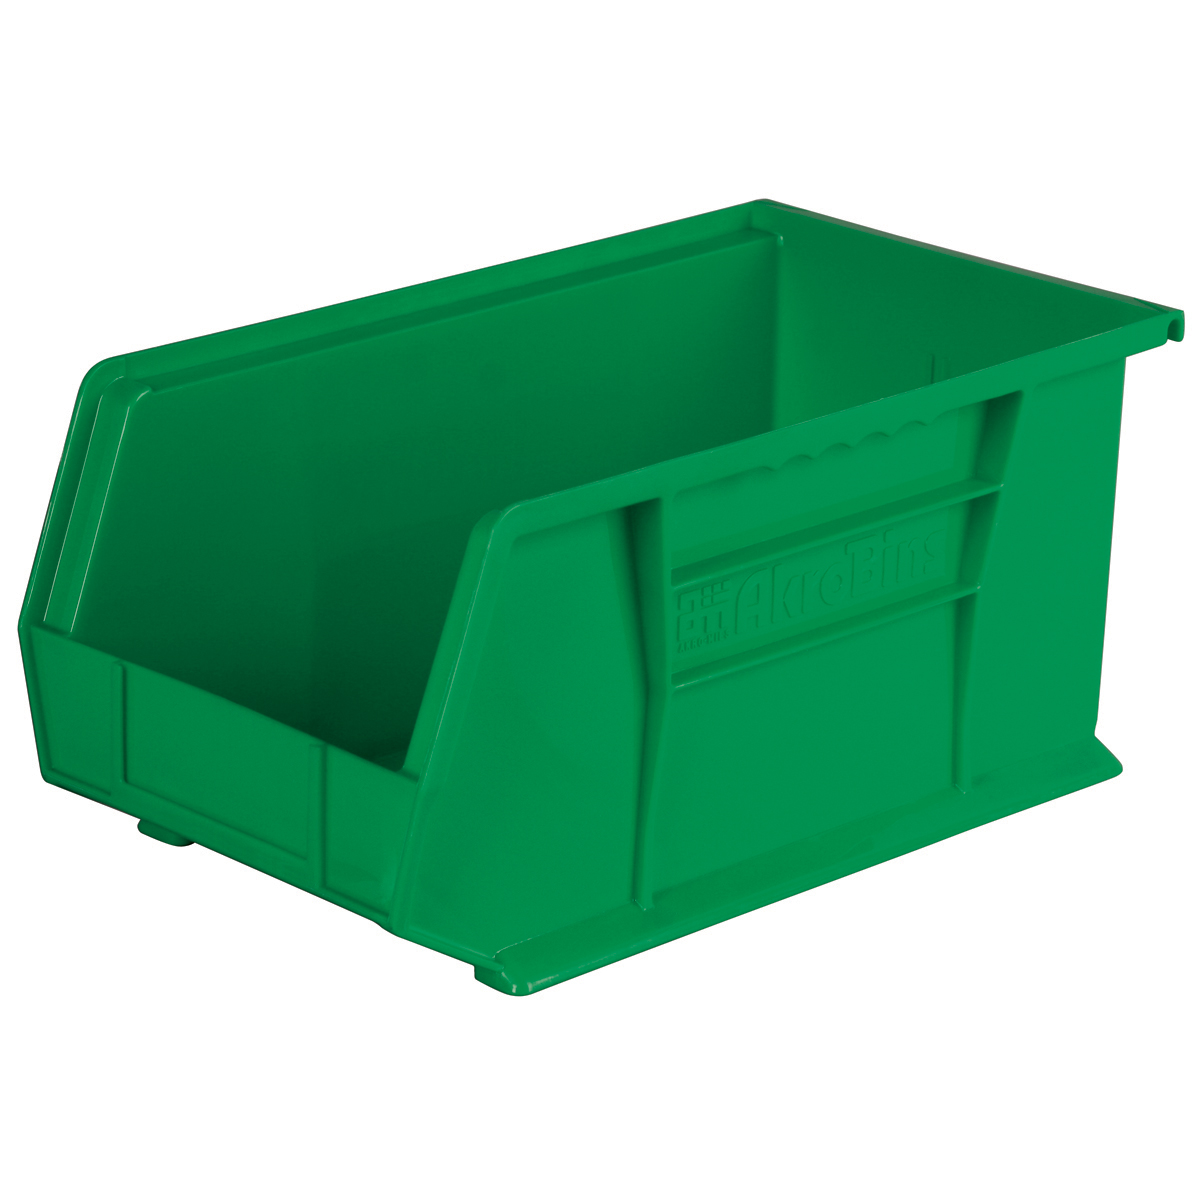 AkroBin 14-3/4 x 8-1/4 x 7, Green (30240GREEN).  This item sold in carton quantities of 12.